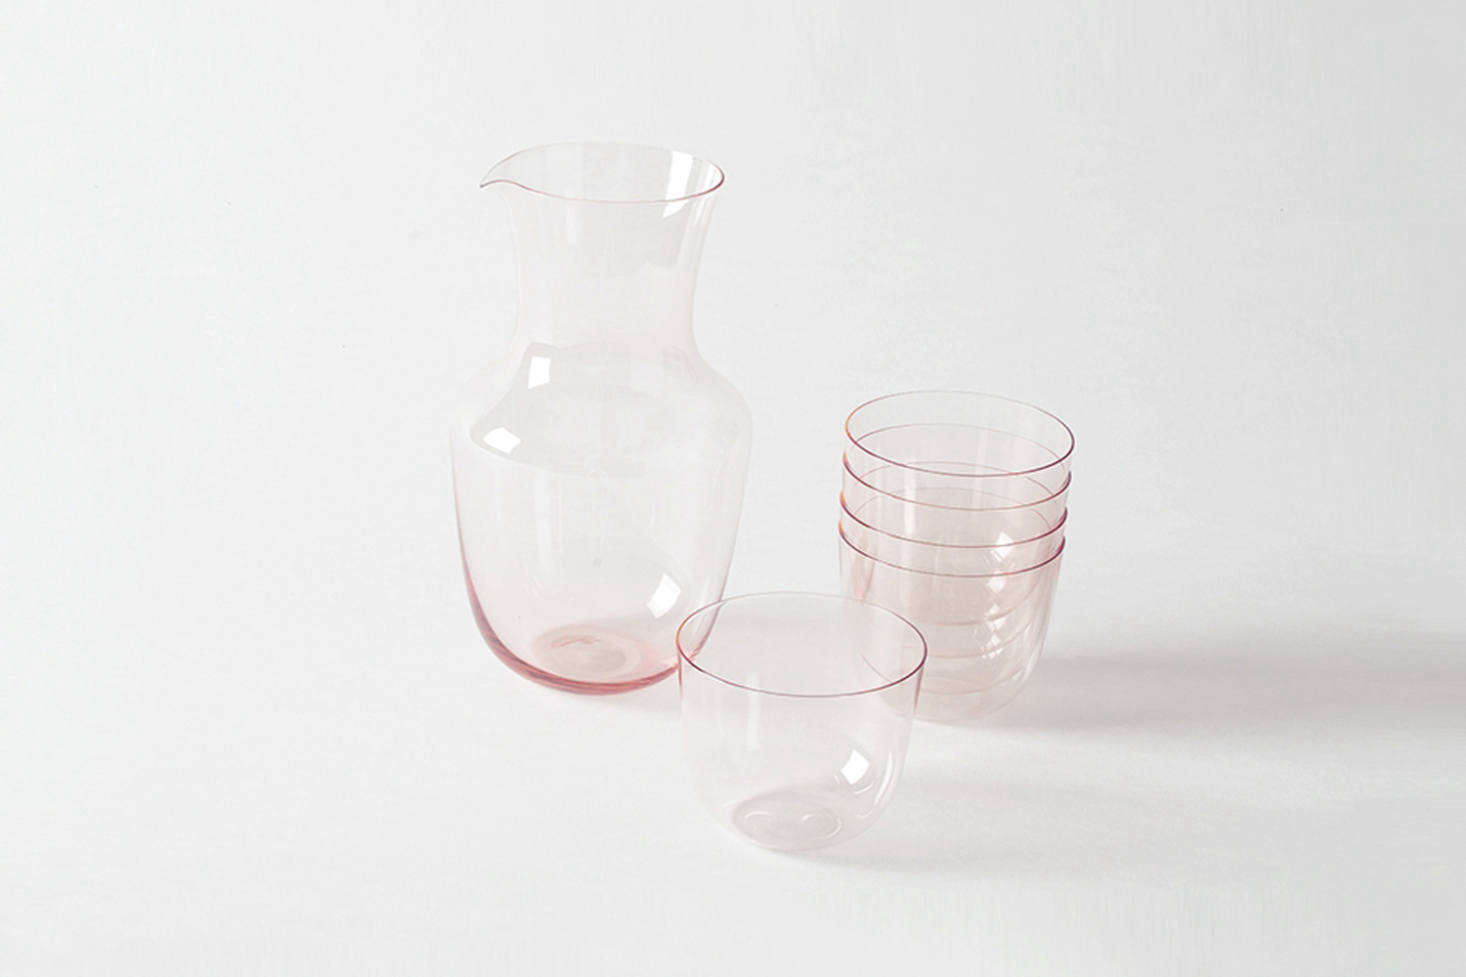 New York Subway Map Drinking Glass 16oz.8 Favorites Drinking Glasses With A Hint Of Pink Remodelista